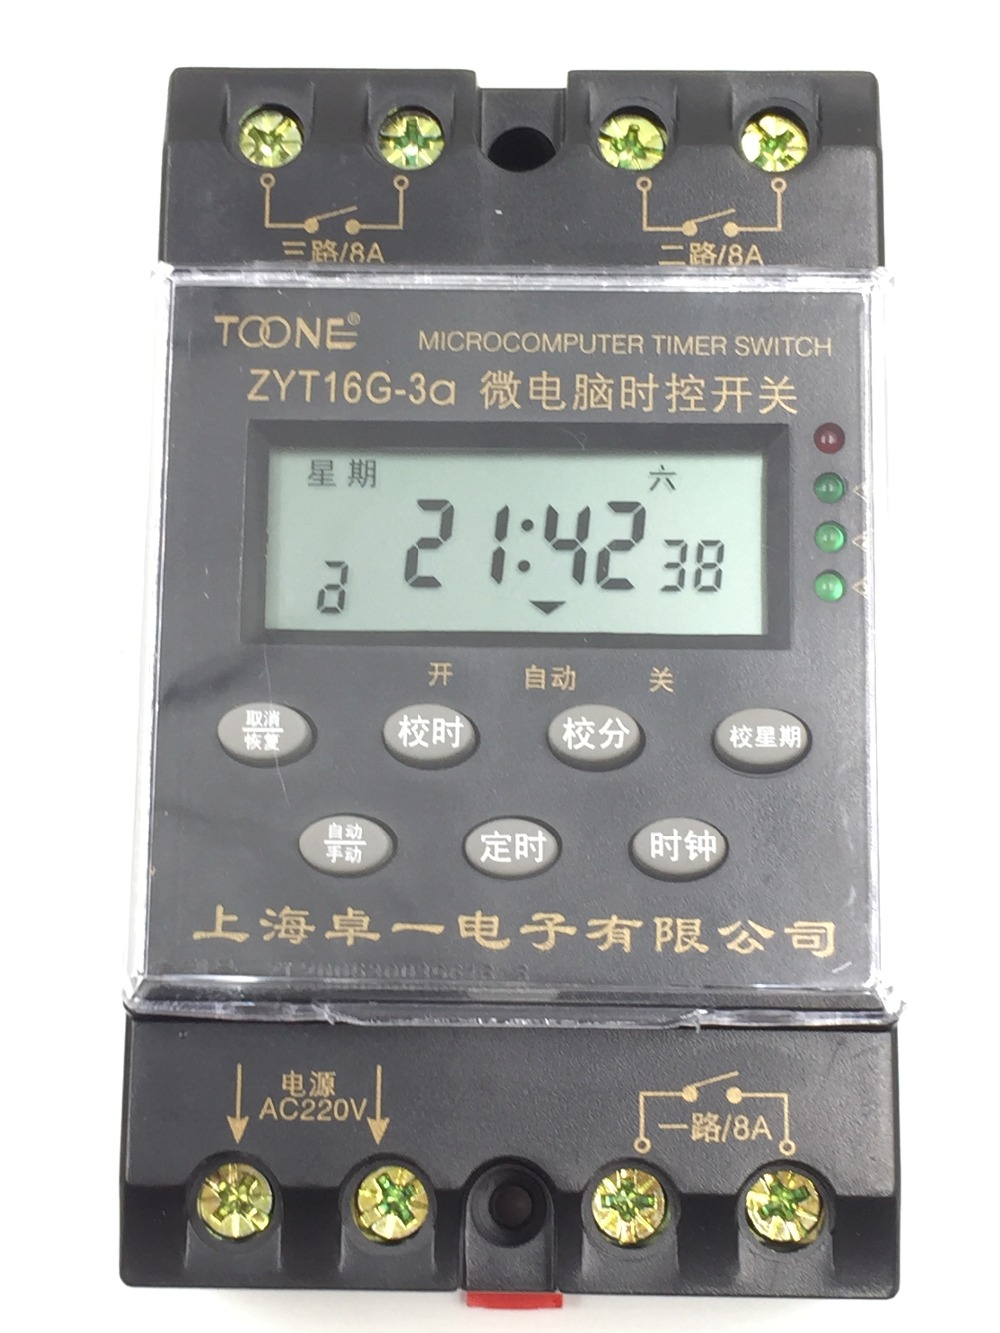 Zhuo one three road multi loop control switch lamp timer timer switch KG316T ZYT16G-3a обувь для дома zhuo poem blue z11812 2015